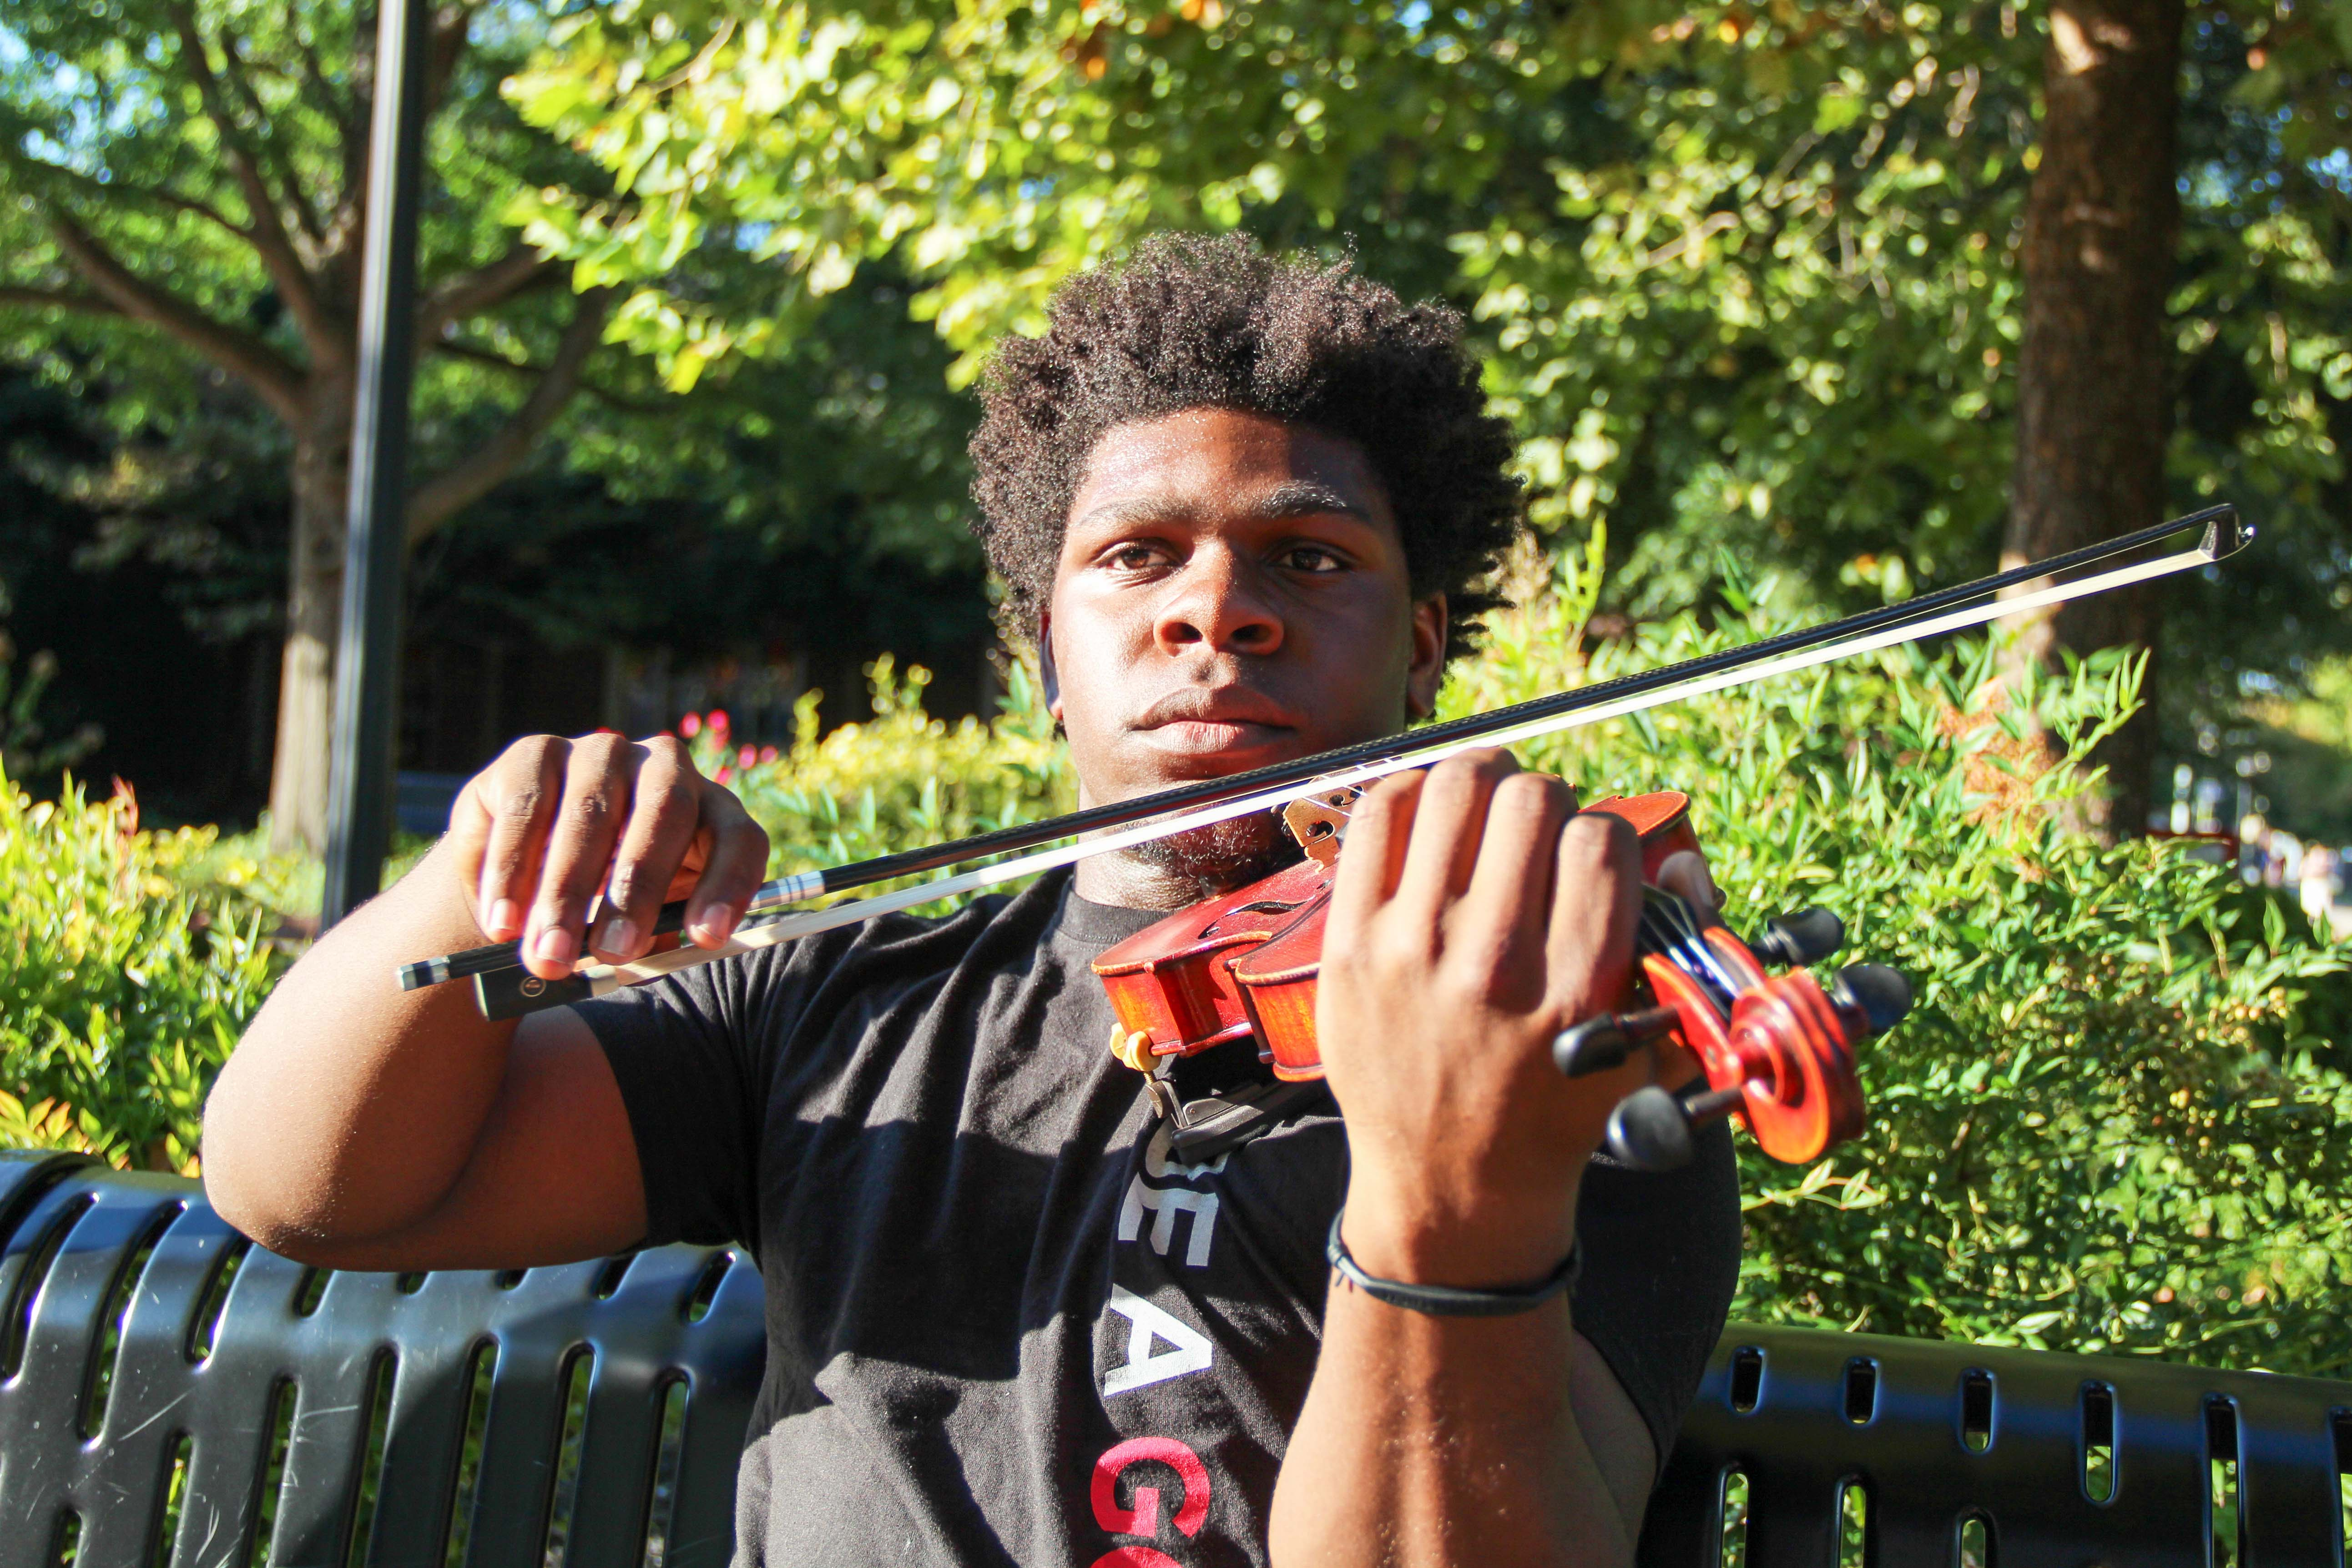 Violin Man' plays music for campus community – The All State